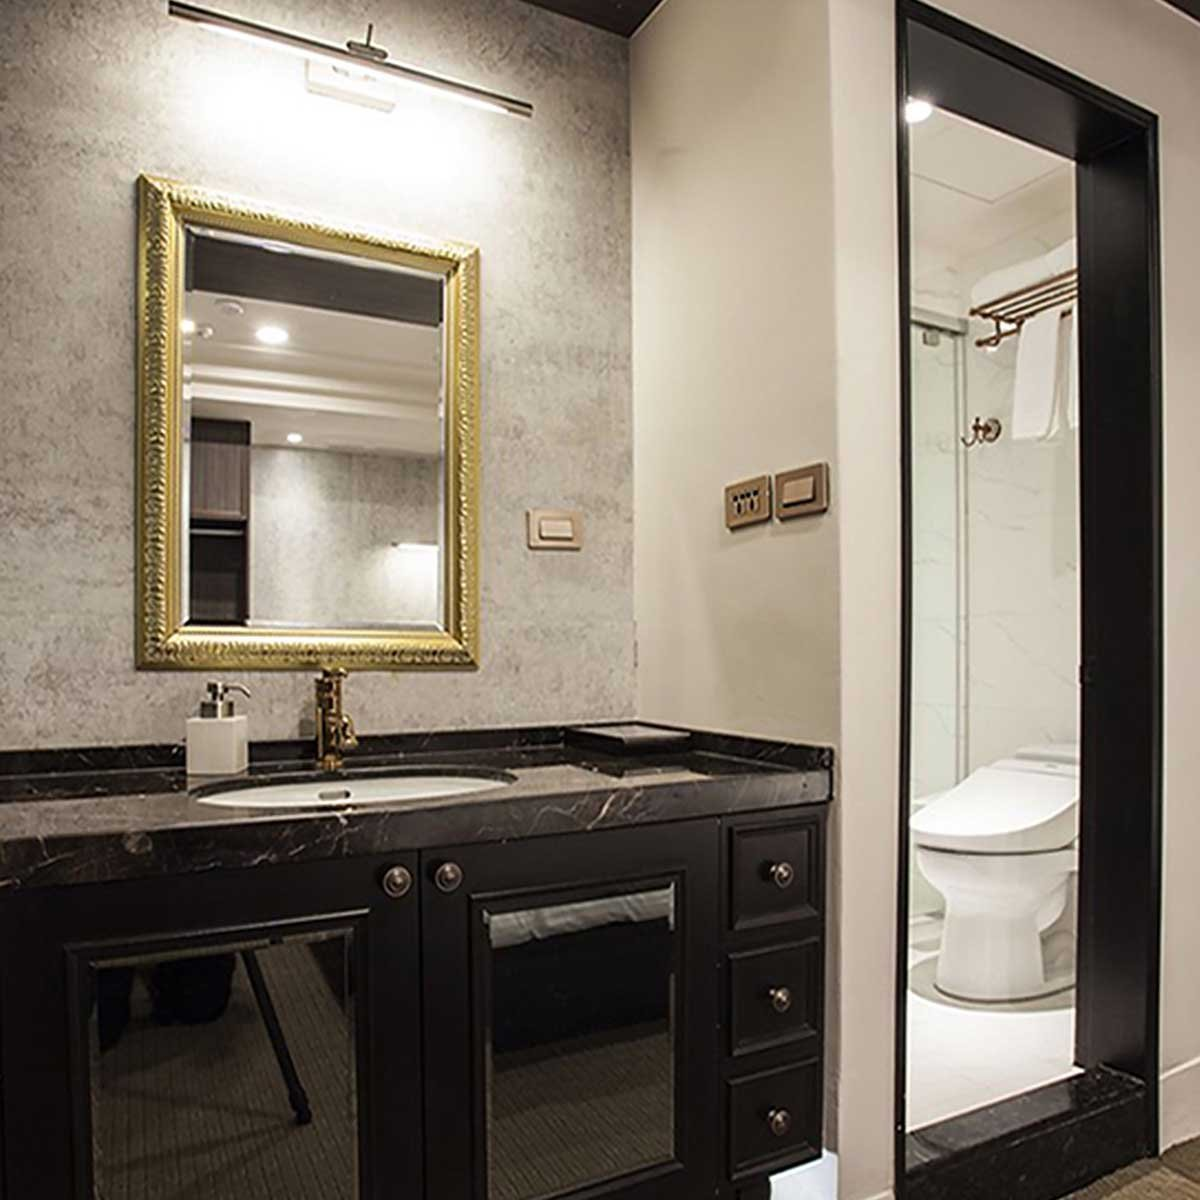 mirror and cabinetry and toilet